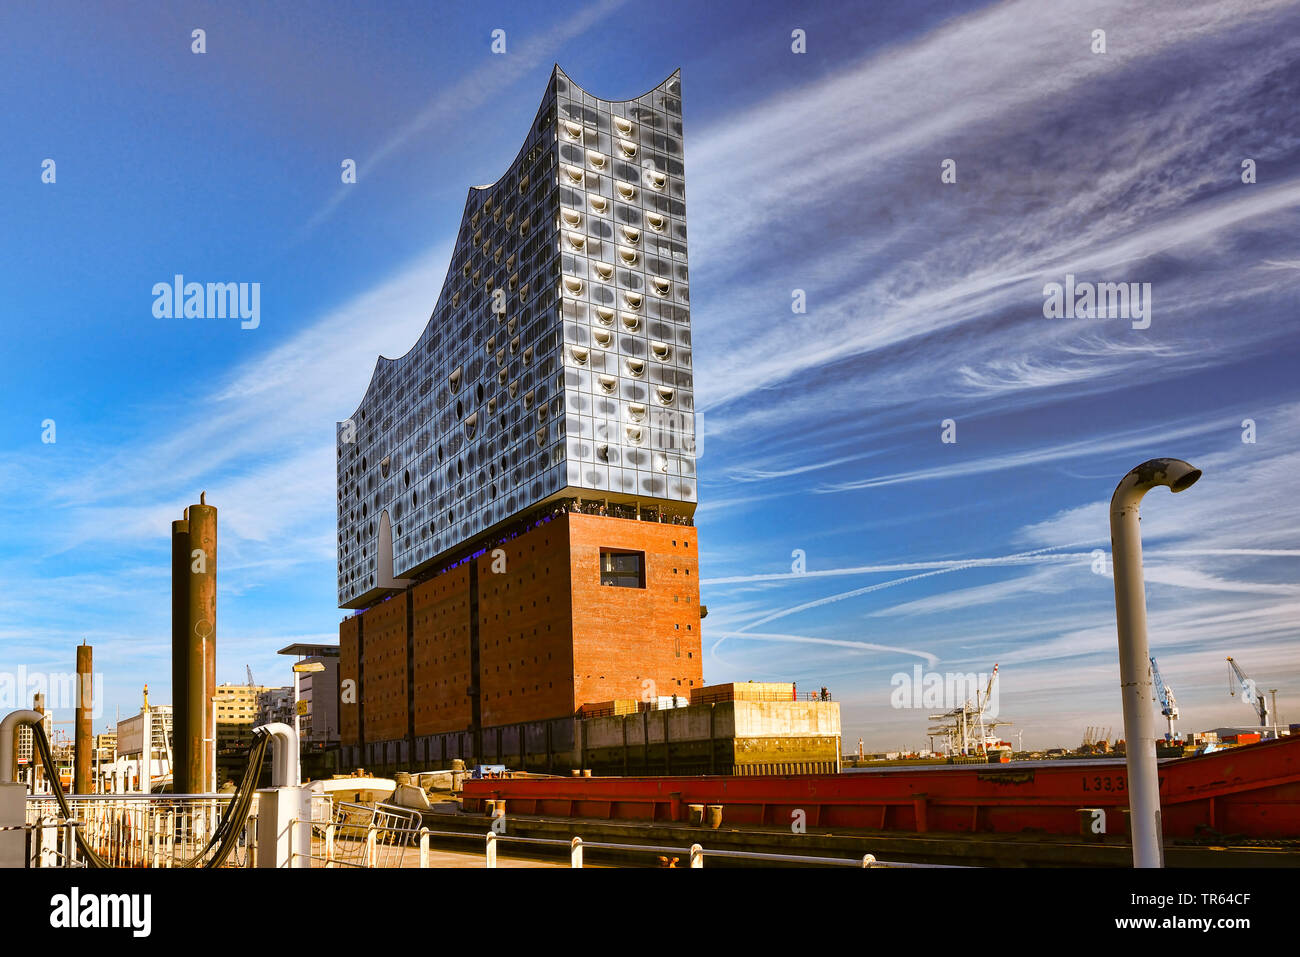 Elbphilharmonie in Hamburg, Germany, Hamburg - Stock Image